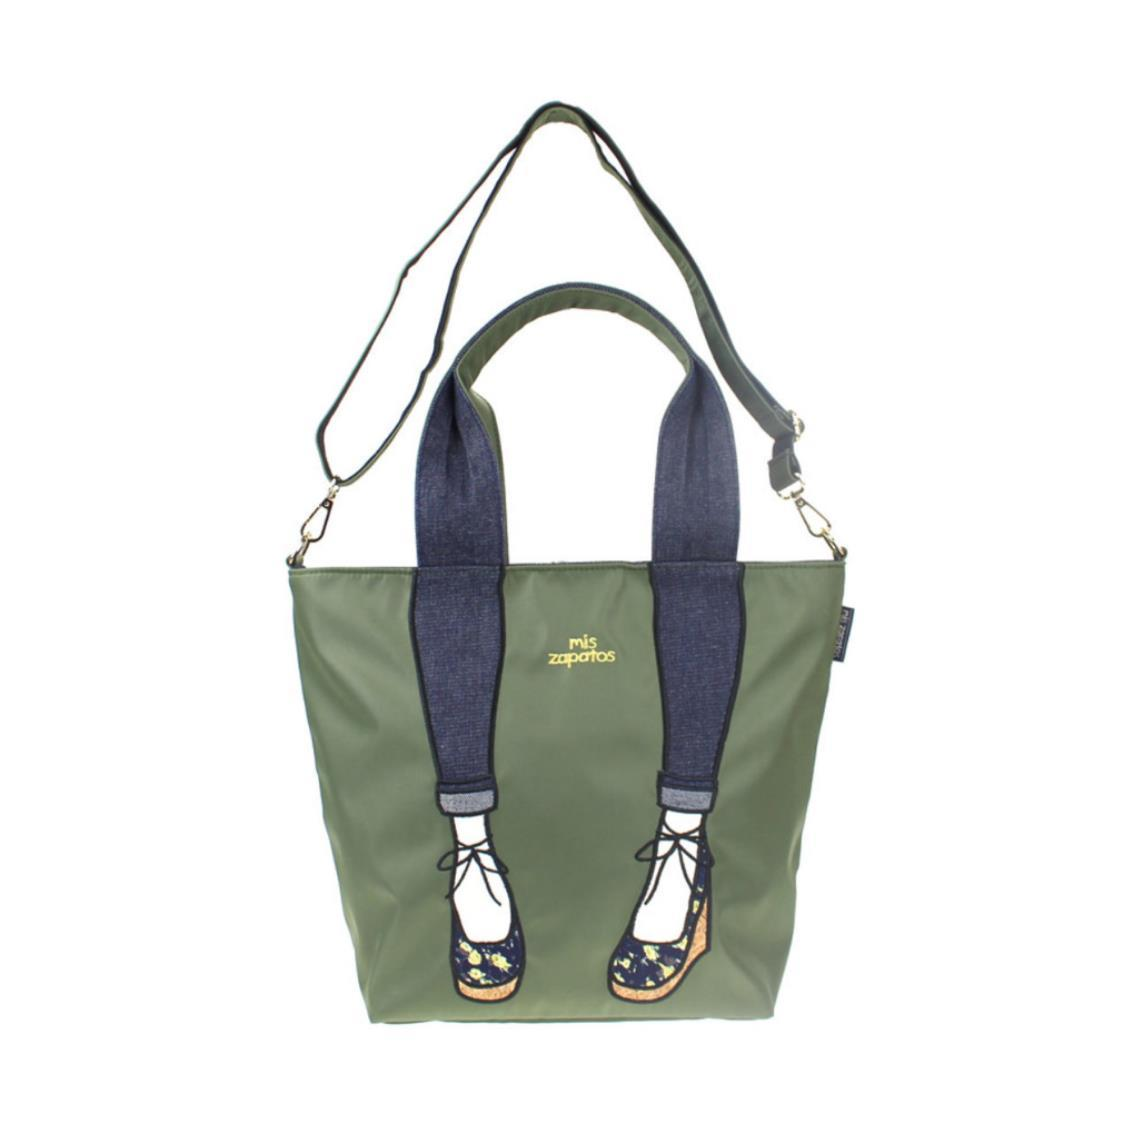 2-Way Use Jeans with Wedges Totebag Khaki